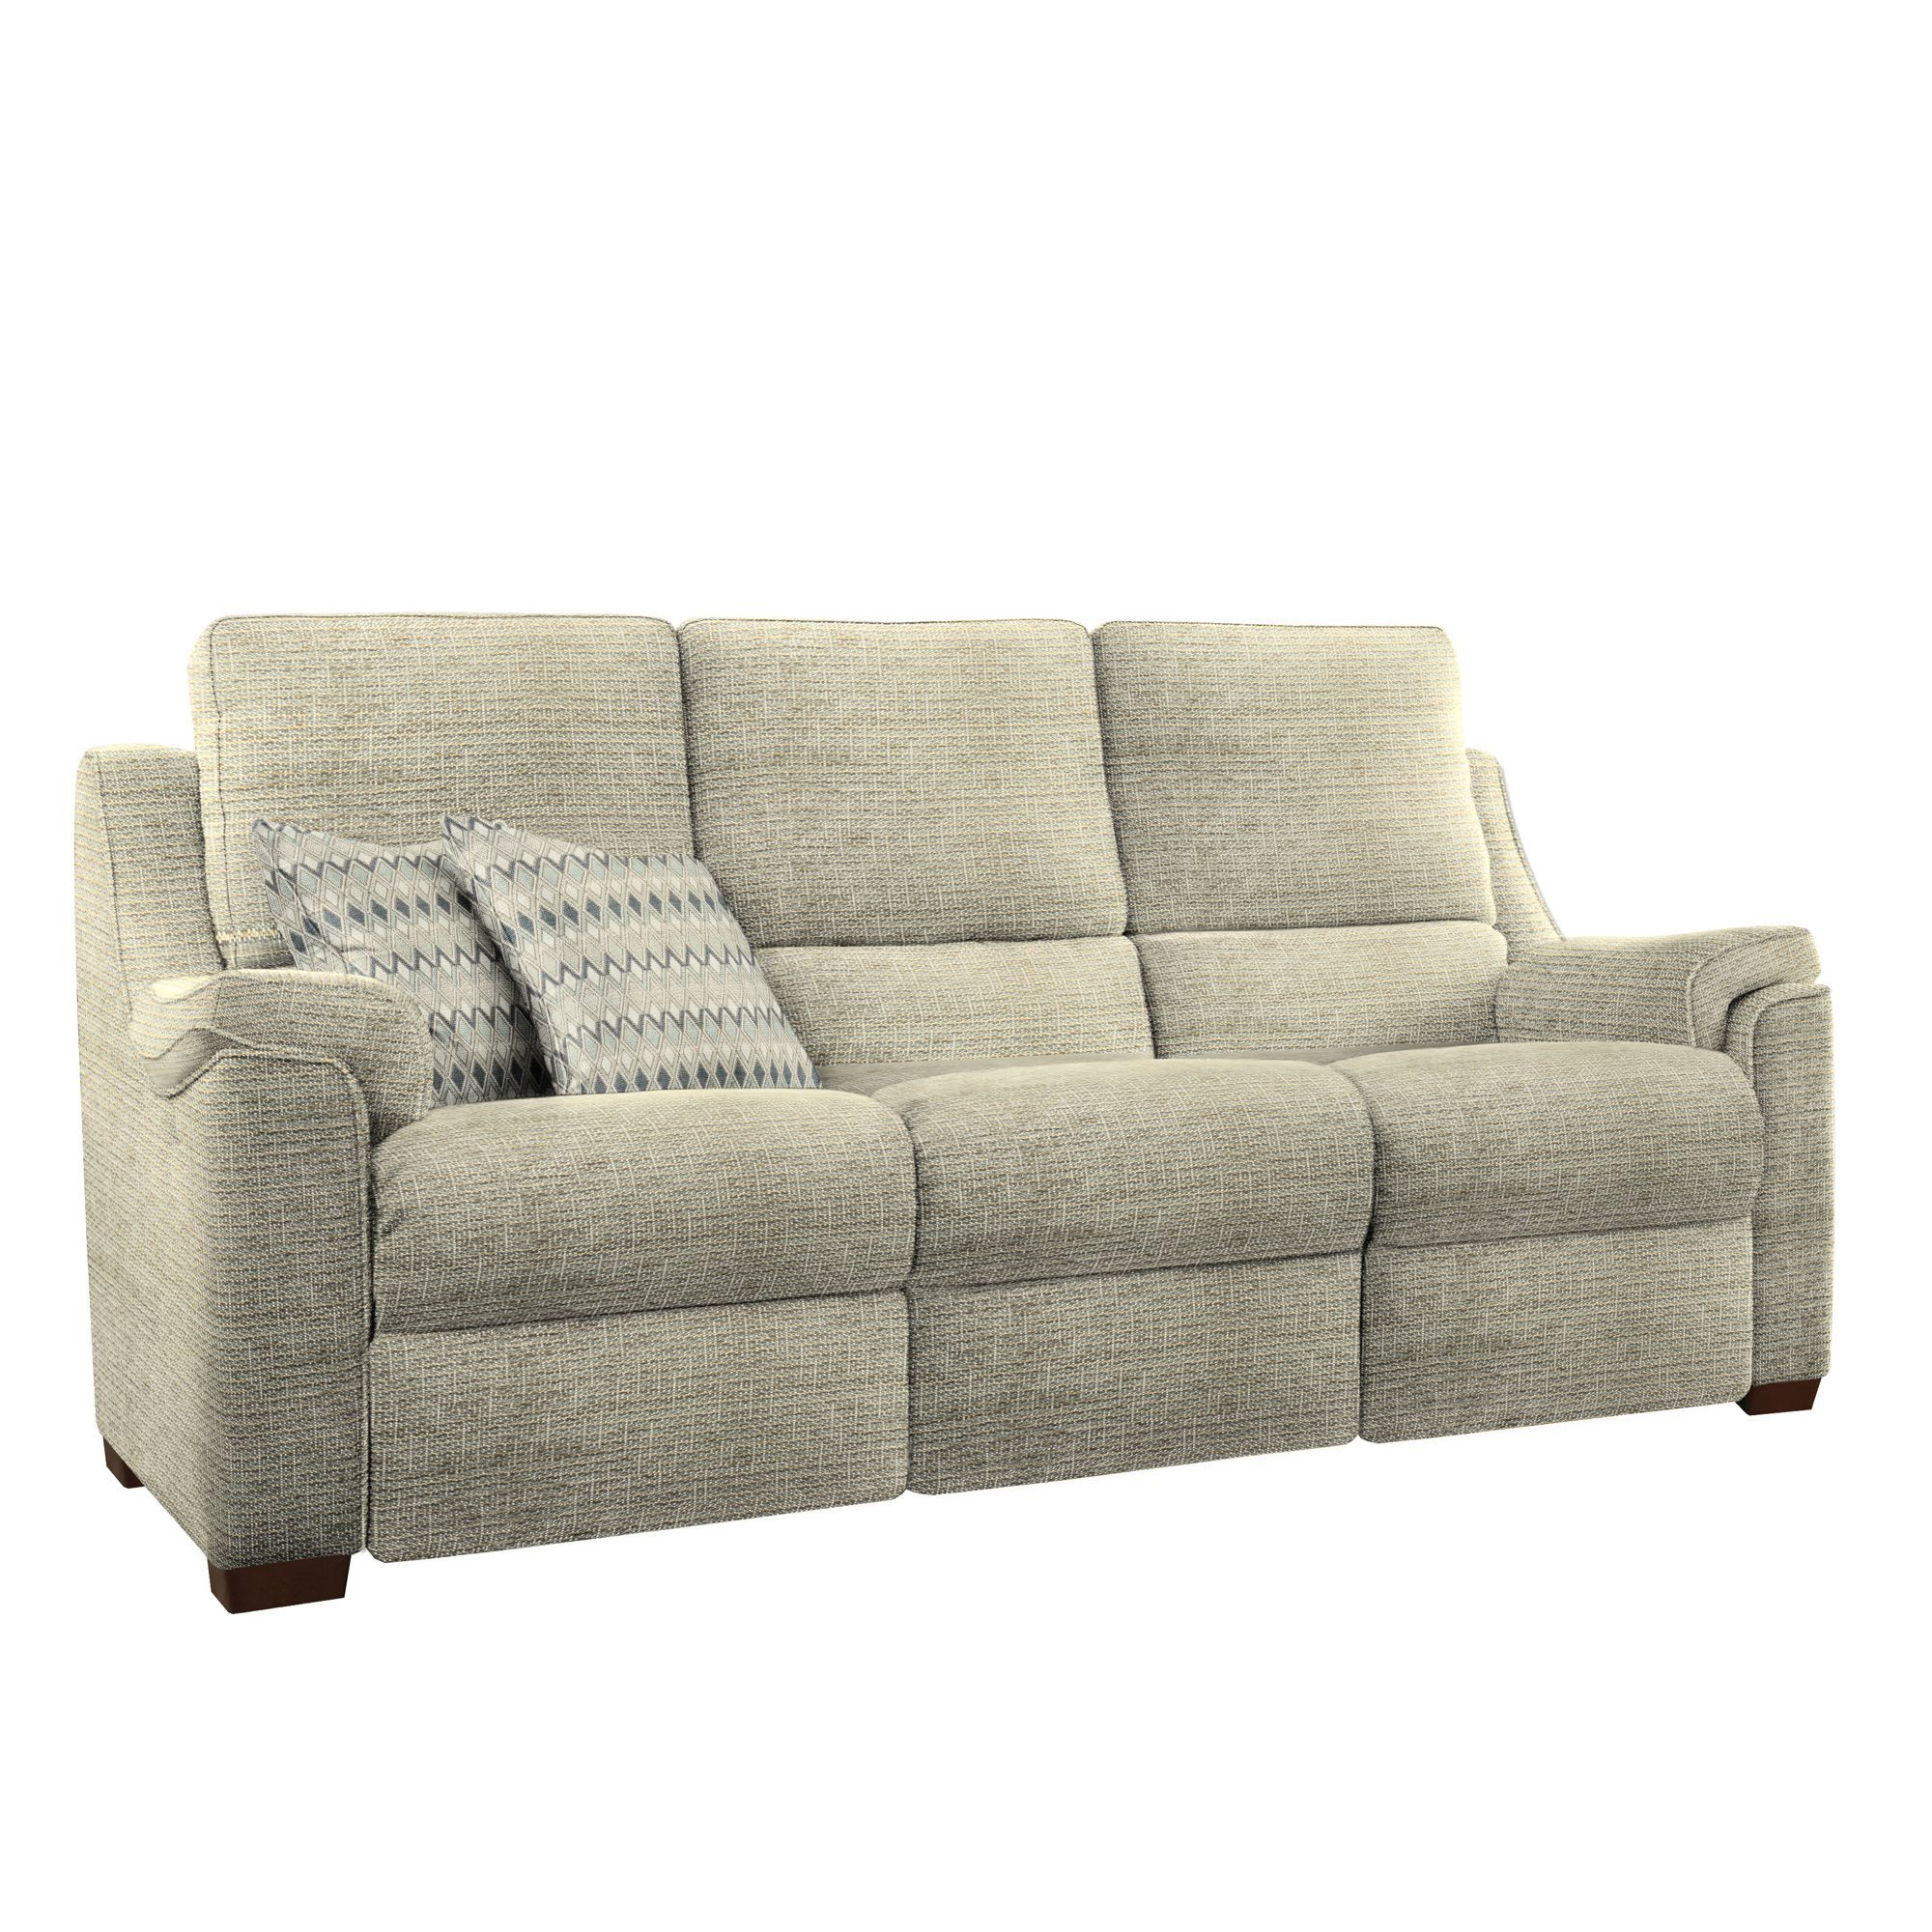 knoll sofas uk how to turn a twin bed into sofa albany 2 seat double power fabric reclining by parker